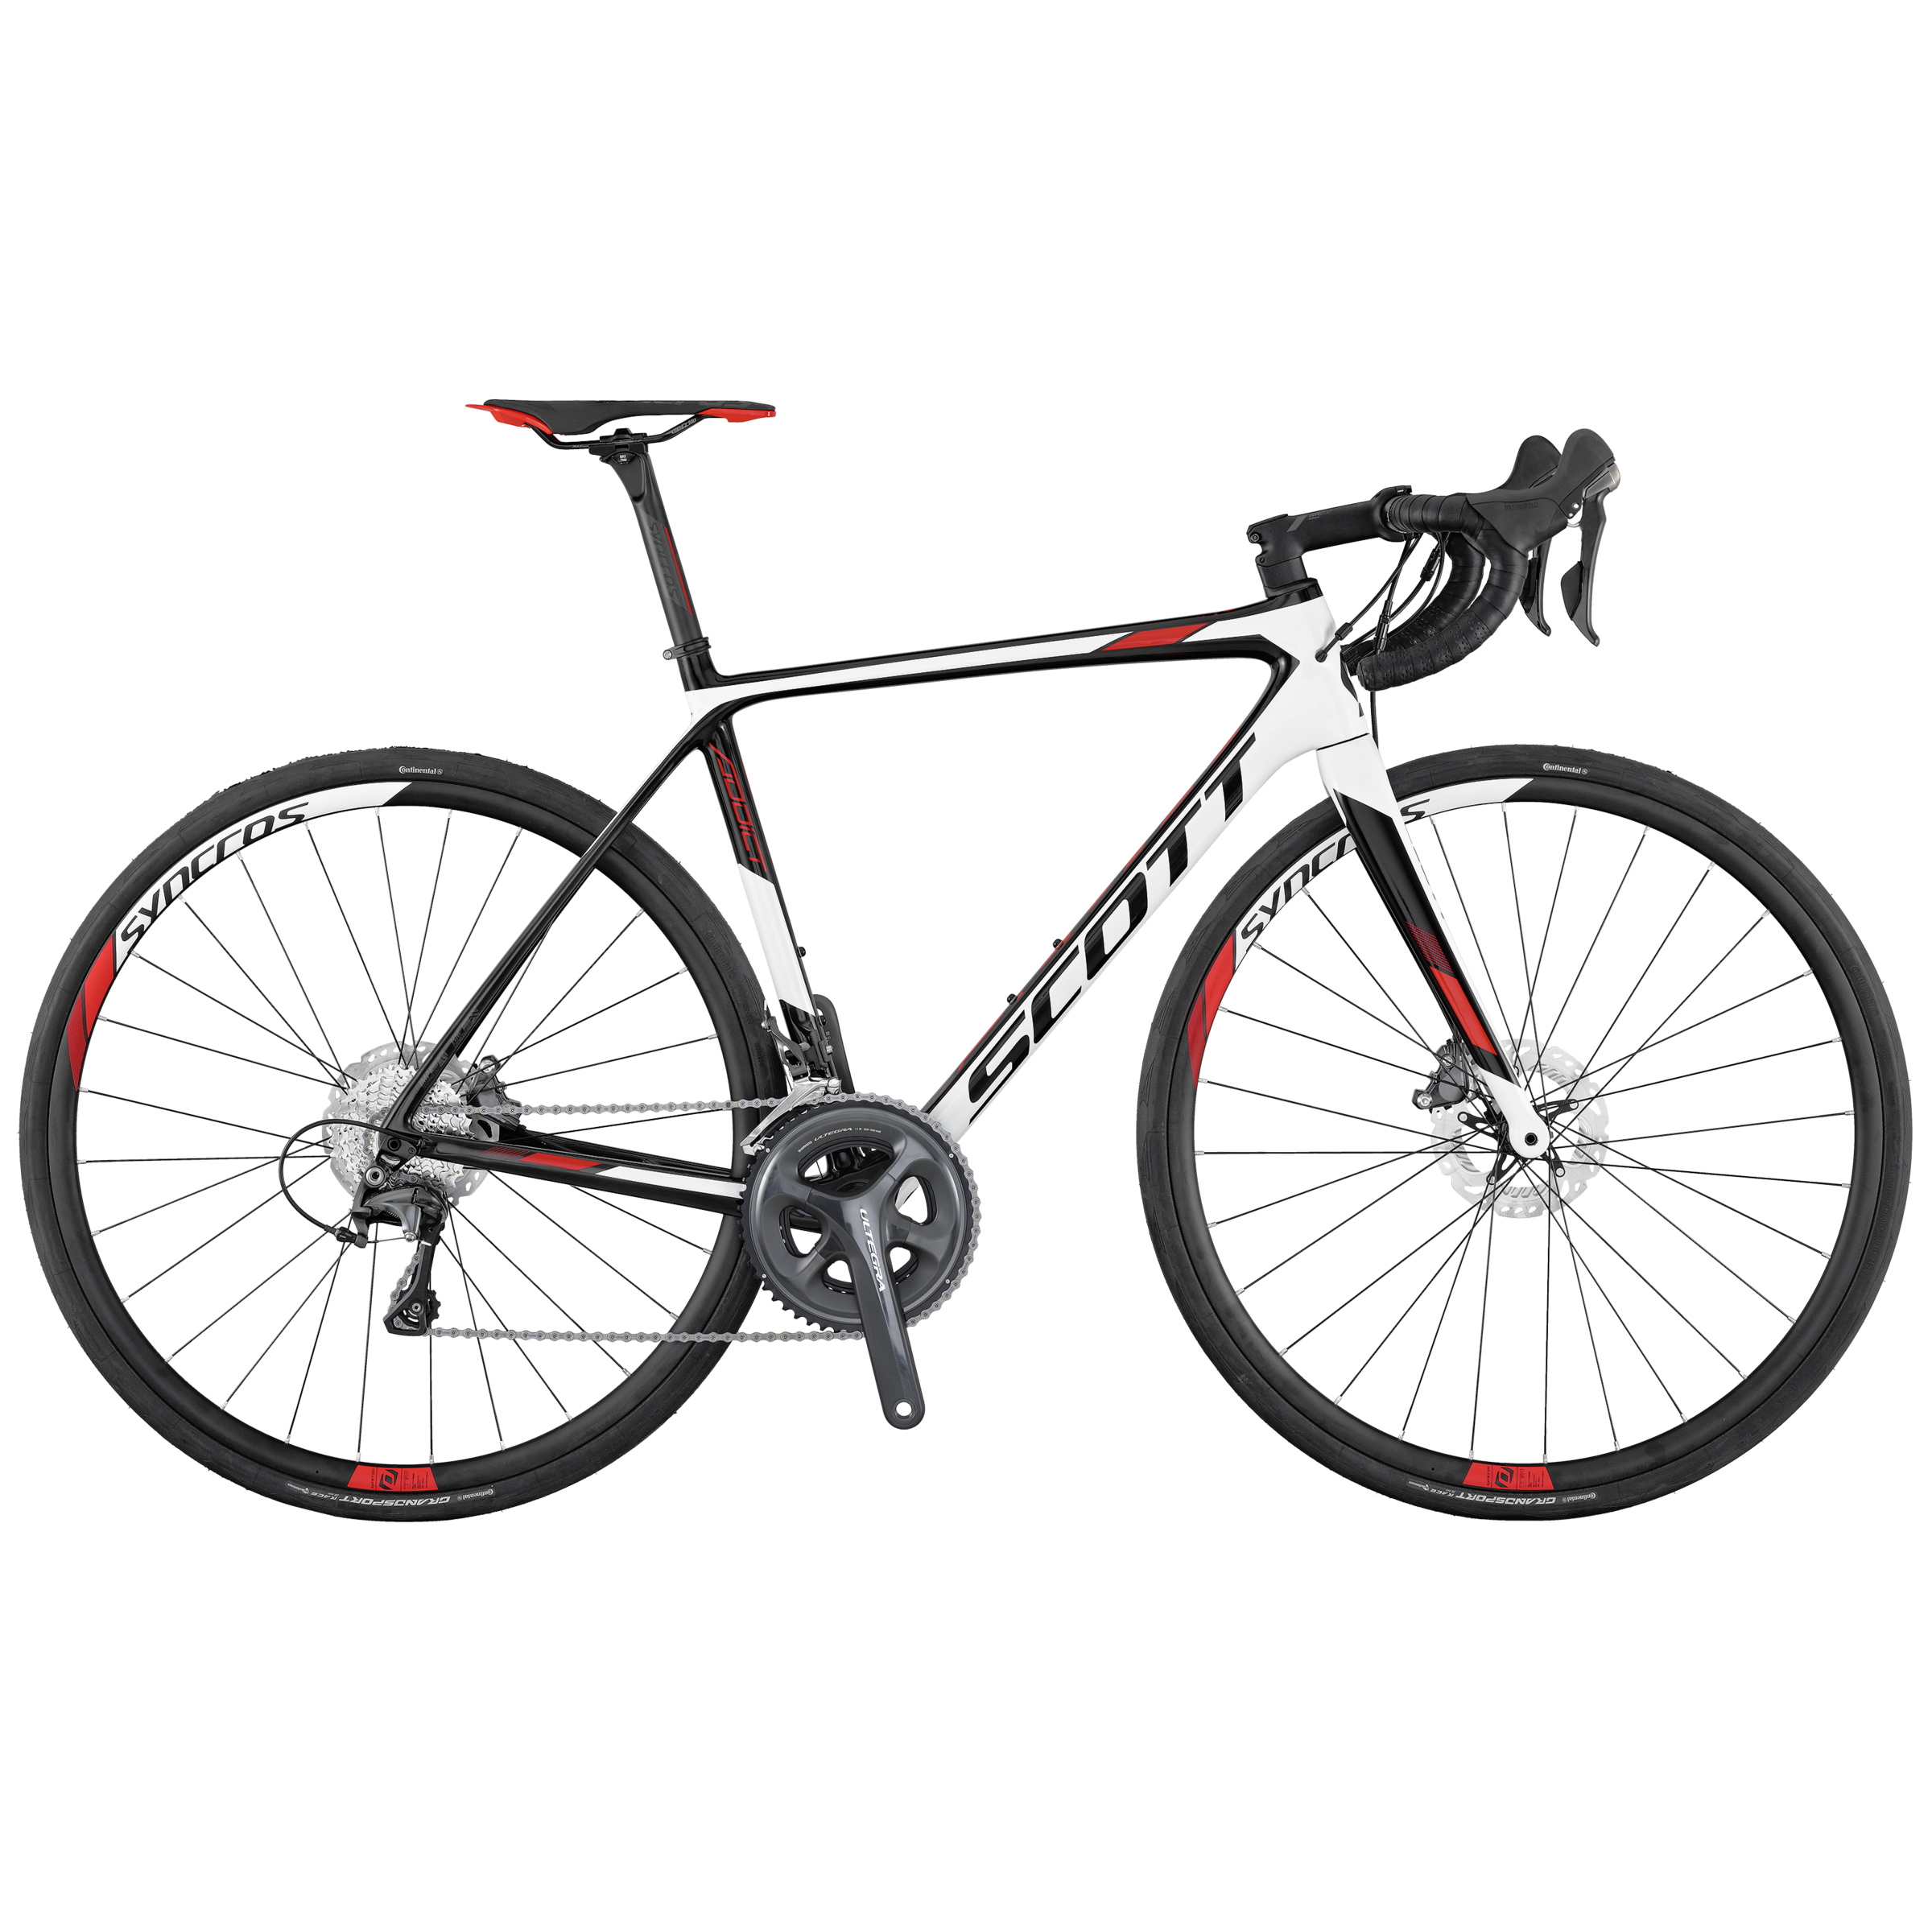 0f9ccd6a247 Scott Addict 20 Disc. 0.0. Rated 0 out of 5 stars. No ReviewsWrite the  First Review · Loading zoom. White/Black/Red